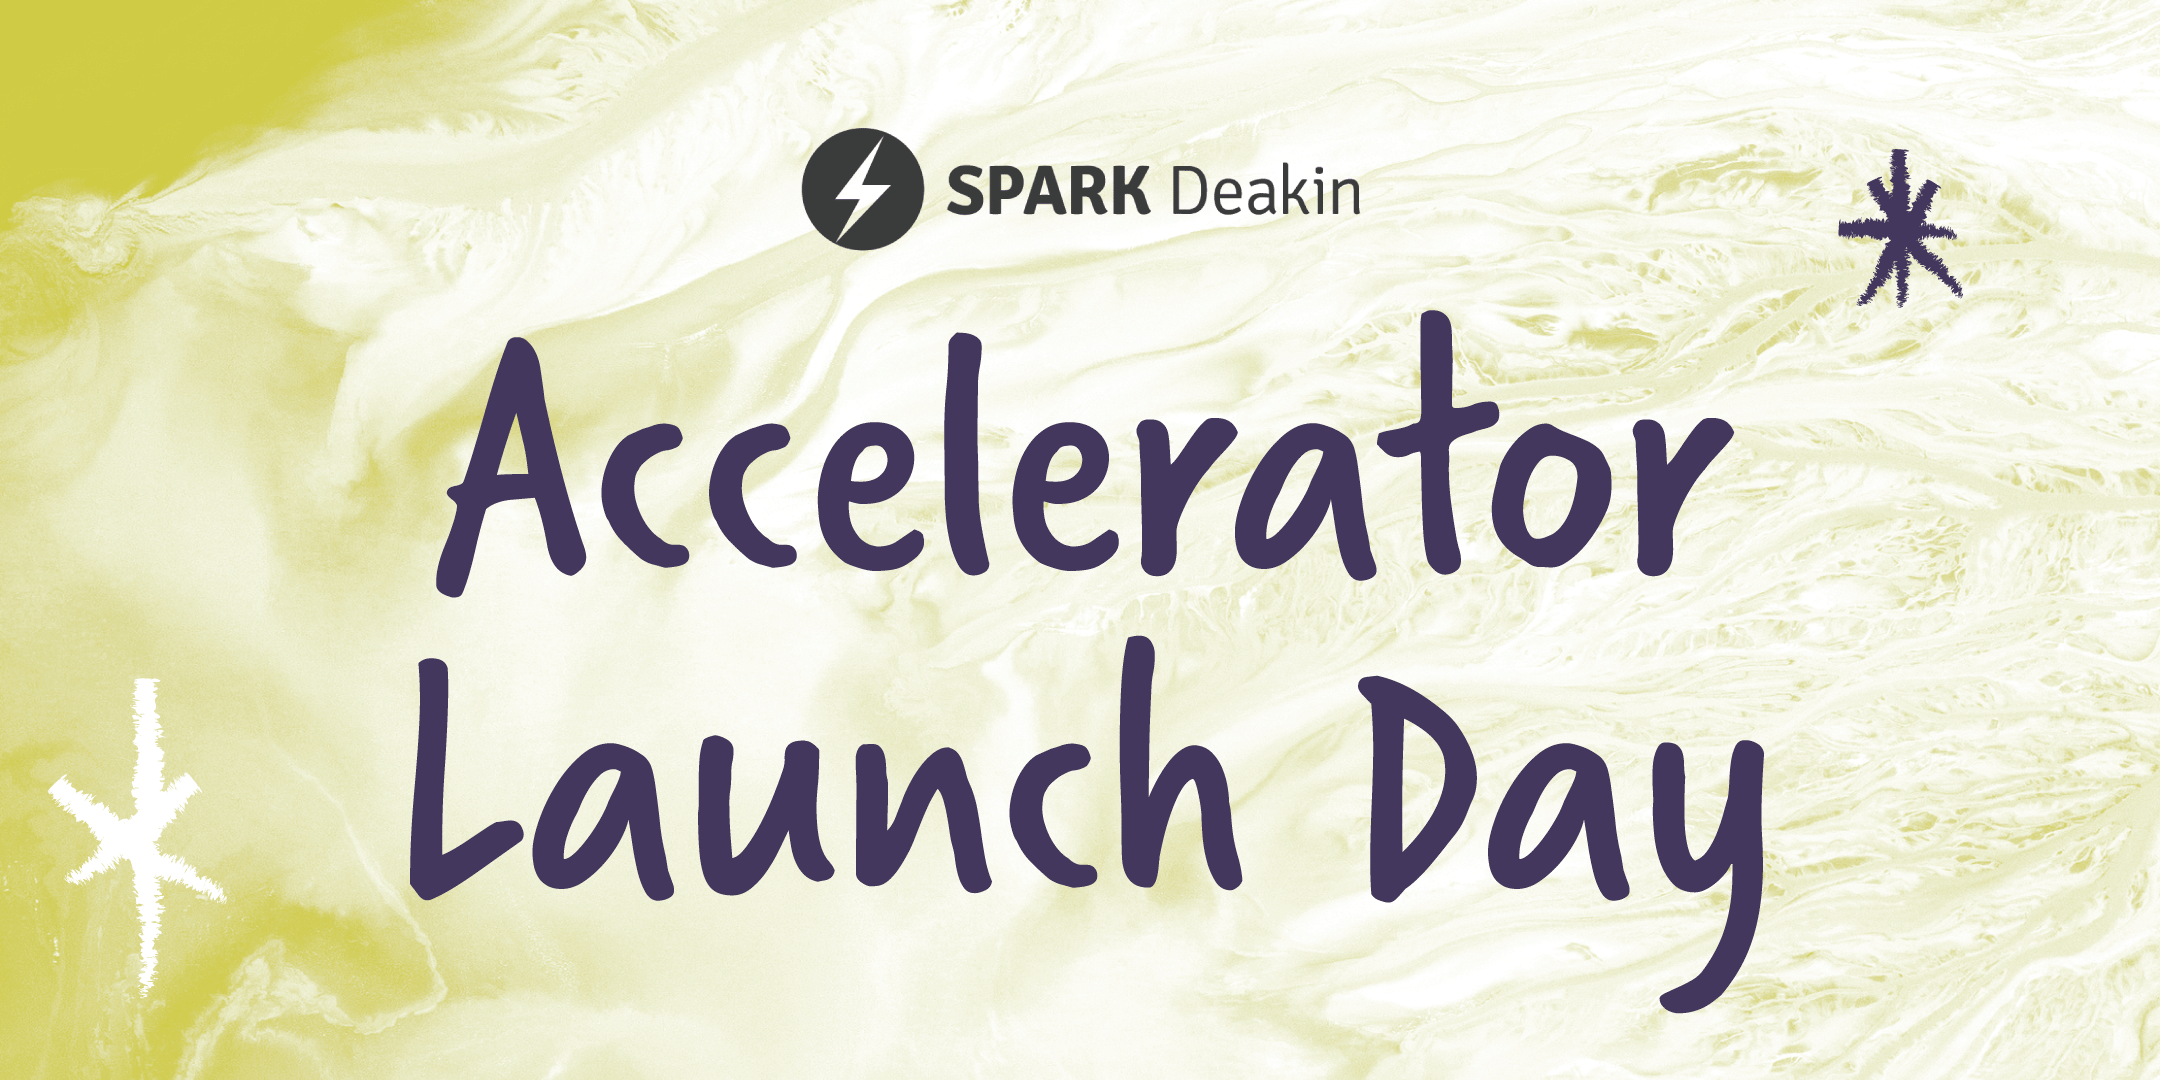 1905-Accelerator-launch-day.png